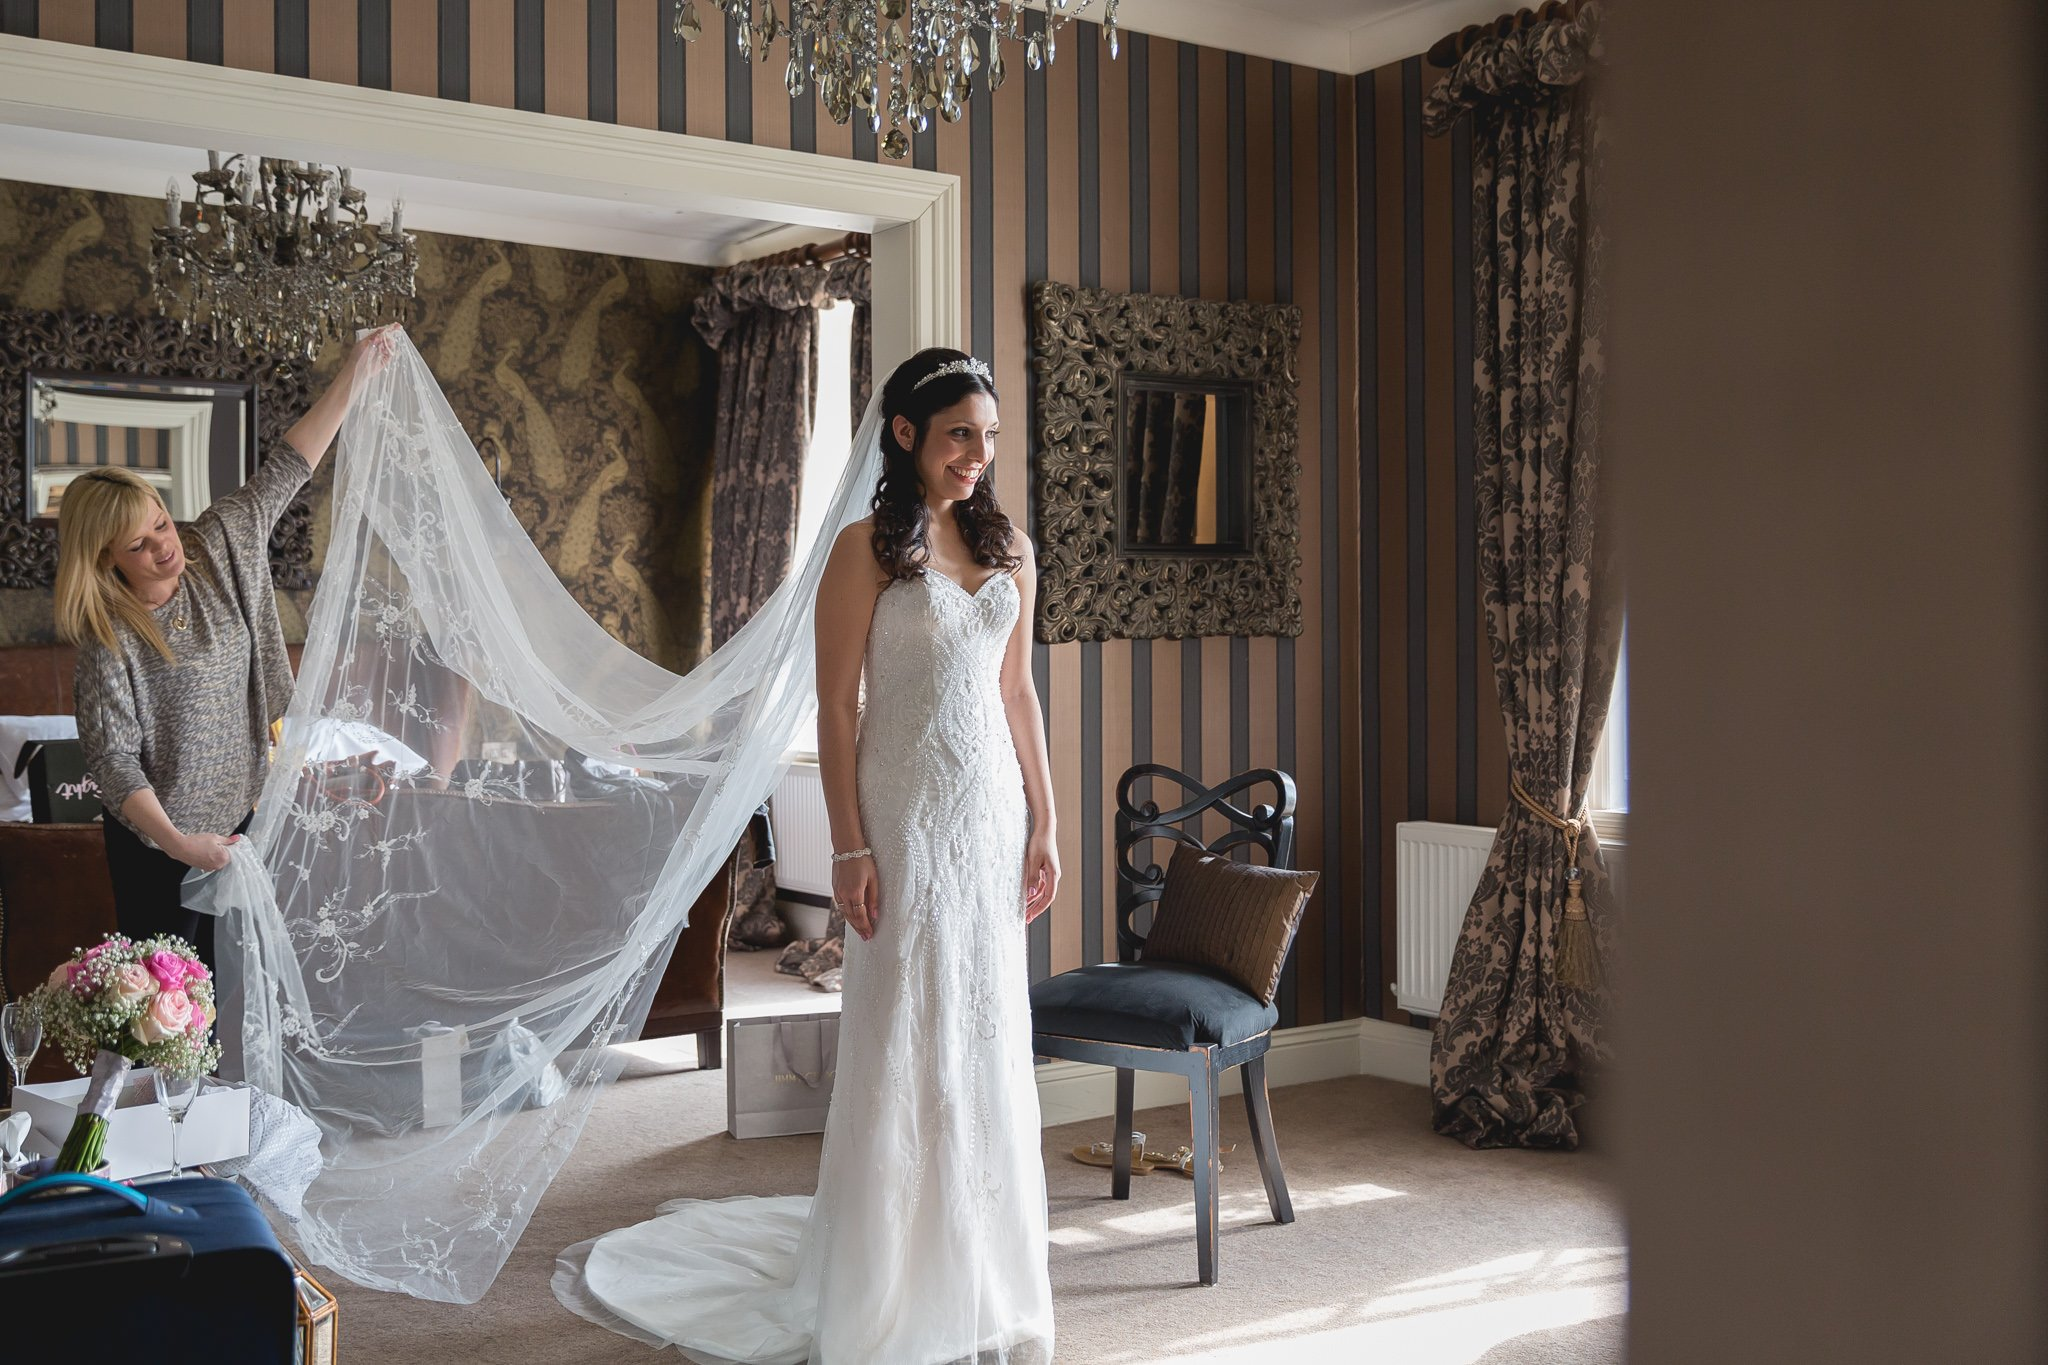 Bridal preparation at Eaves Hall